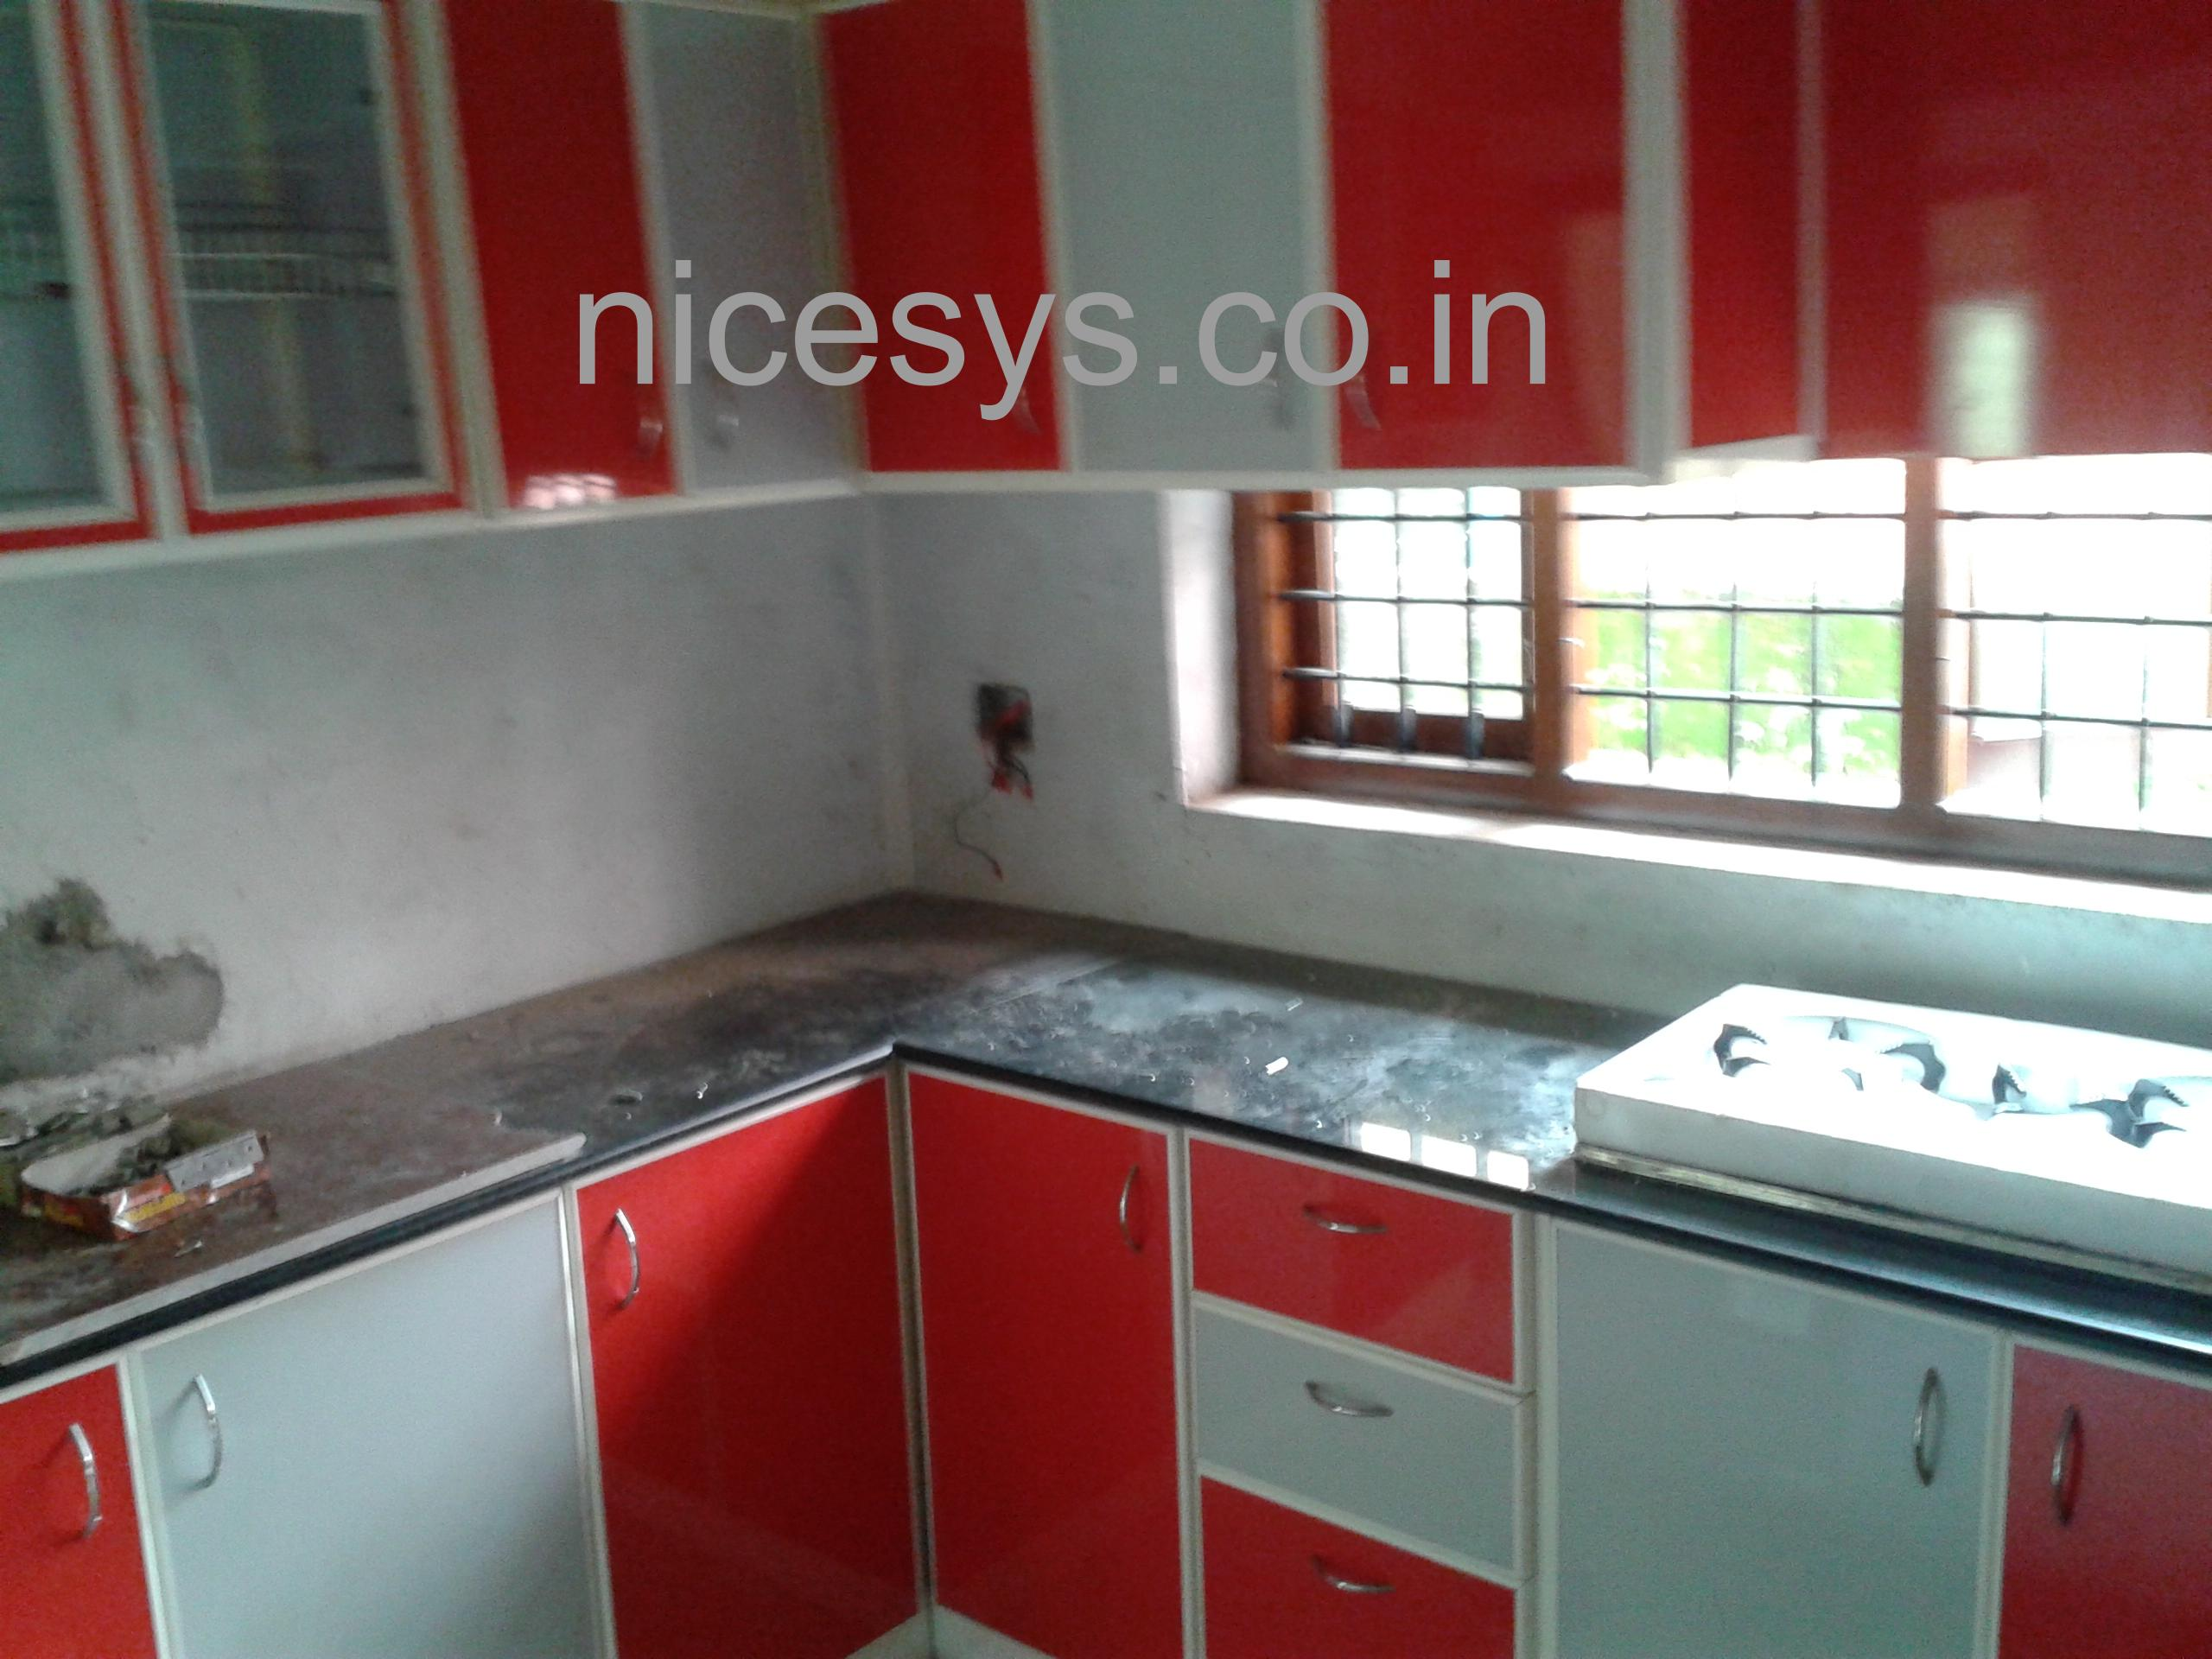 Nicesys aluminium interiors pvt ltd in kakkanad cochin for Modern kitchen design aluminium